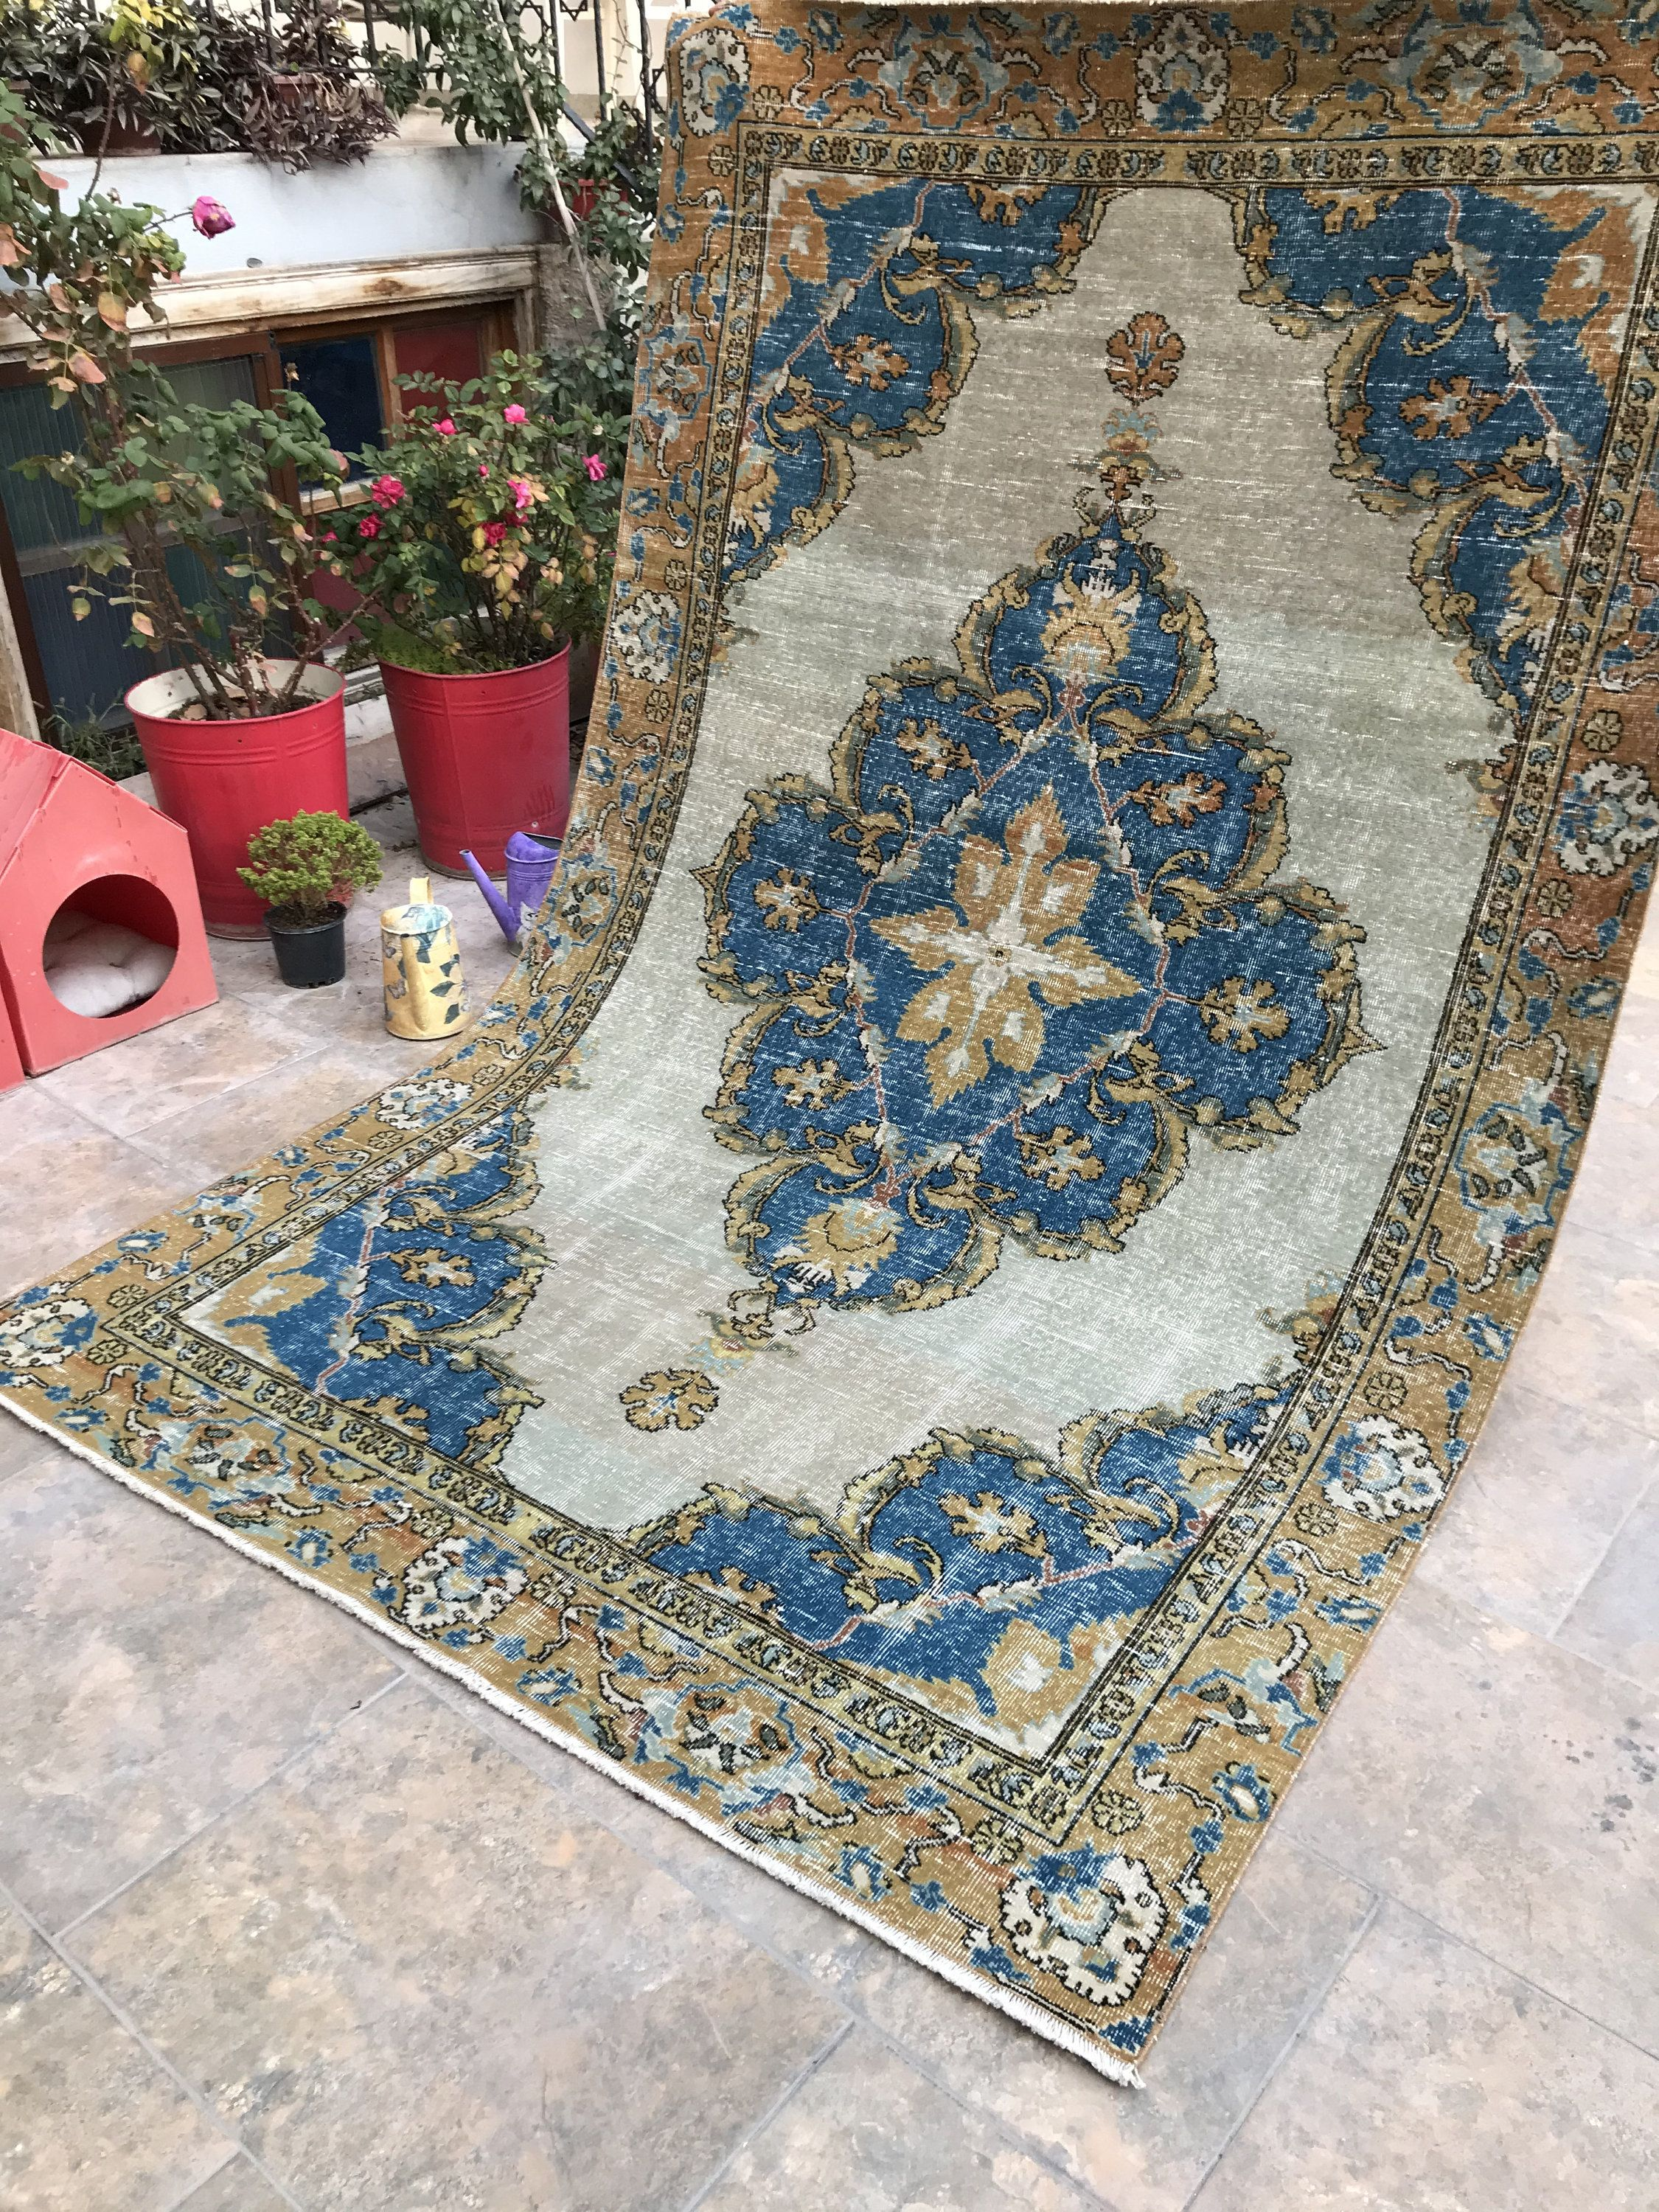 Antique Turkish Decorative Large Rug Gran And Blue Medallion Etsy In 2020 Blue Medallion Vintage Rugs Rugs